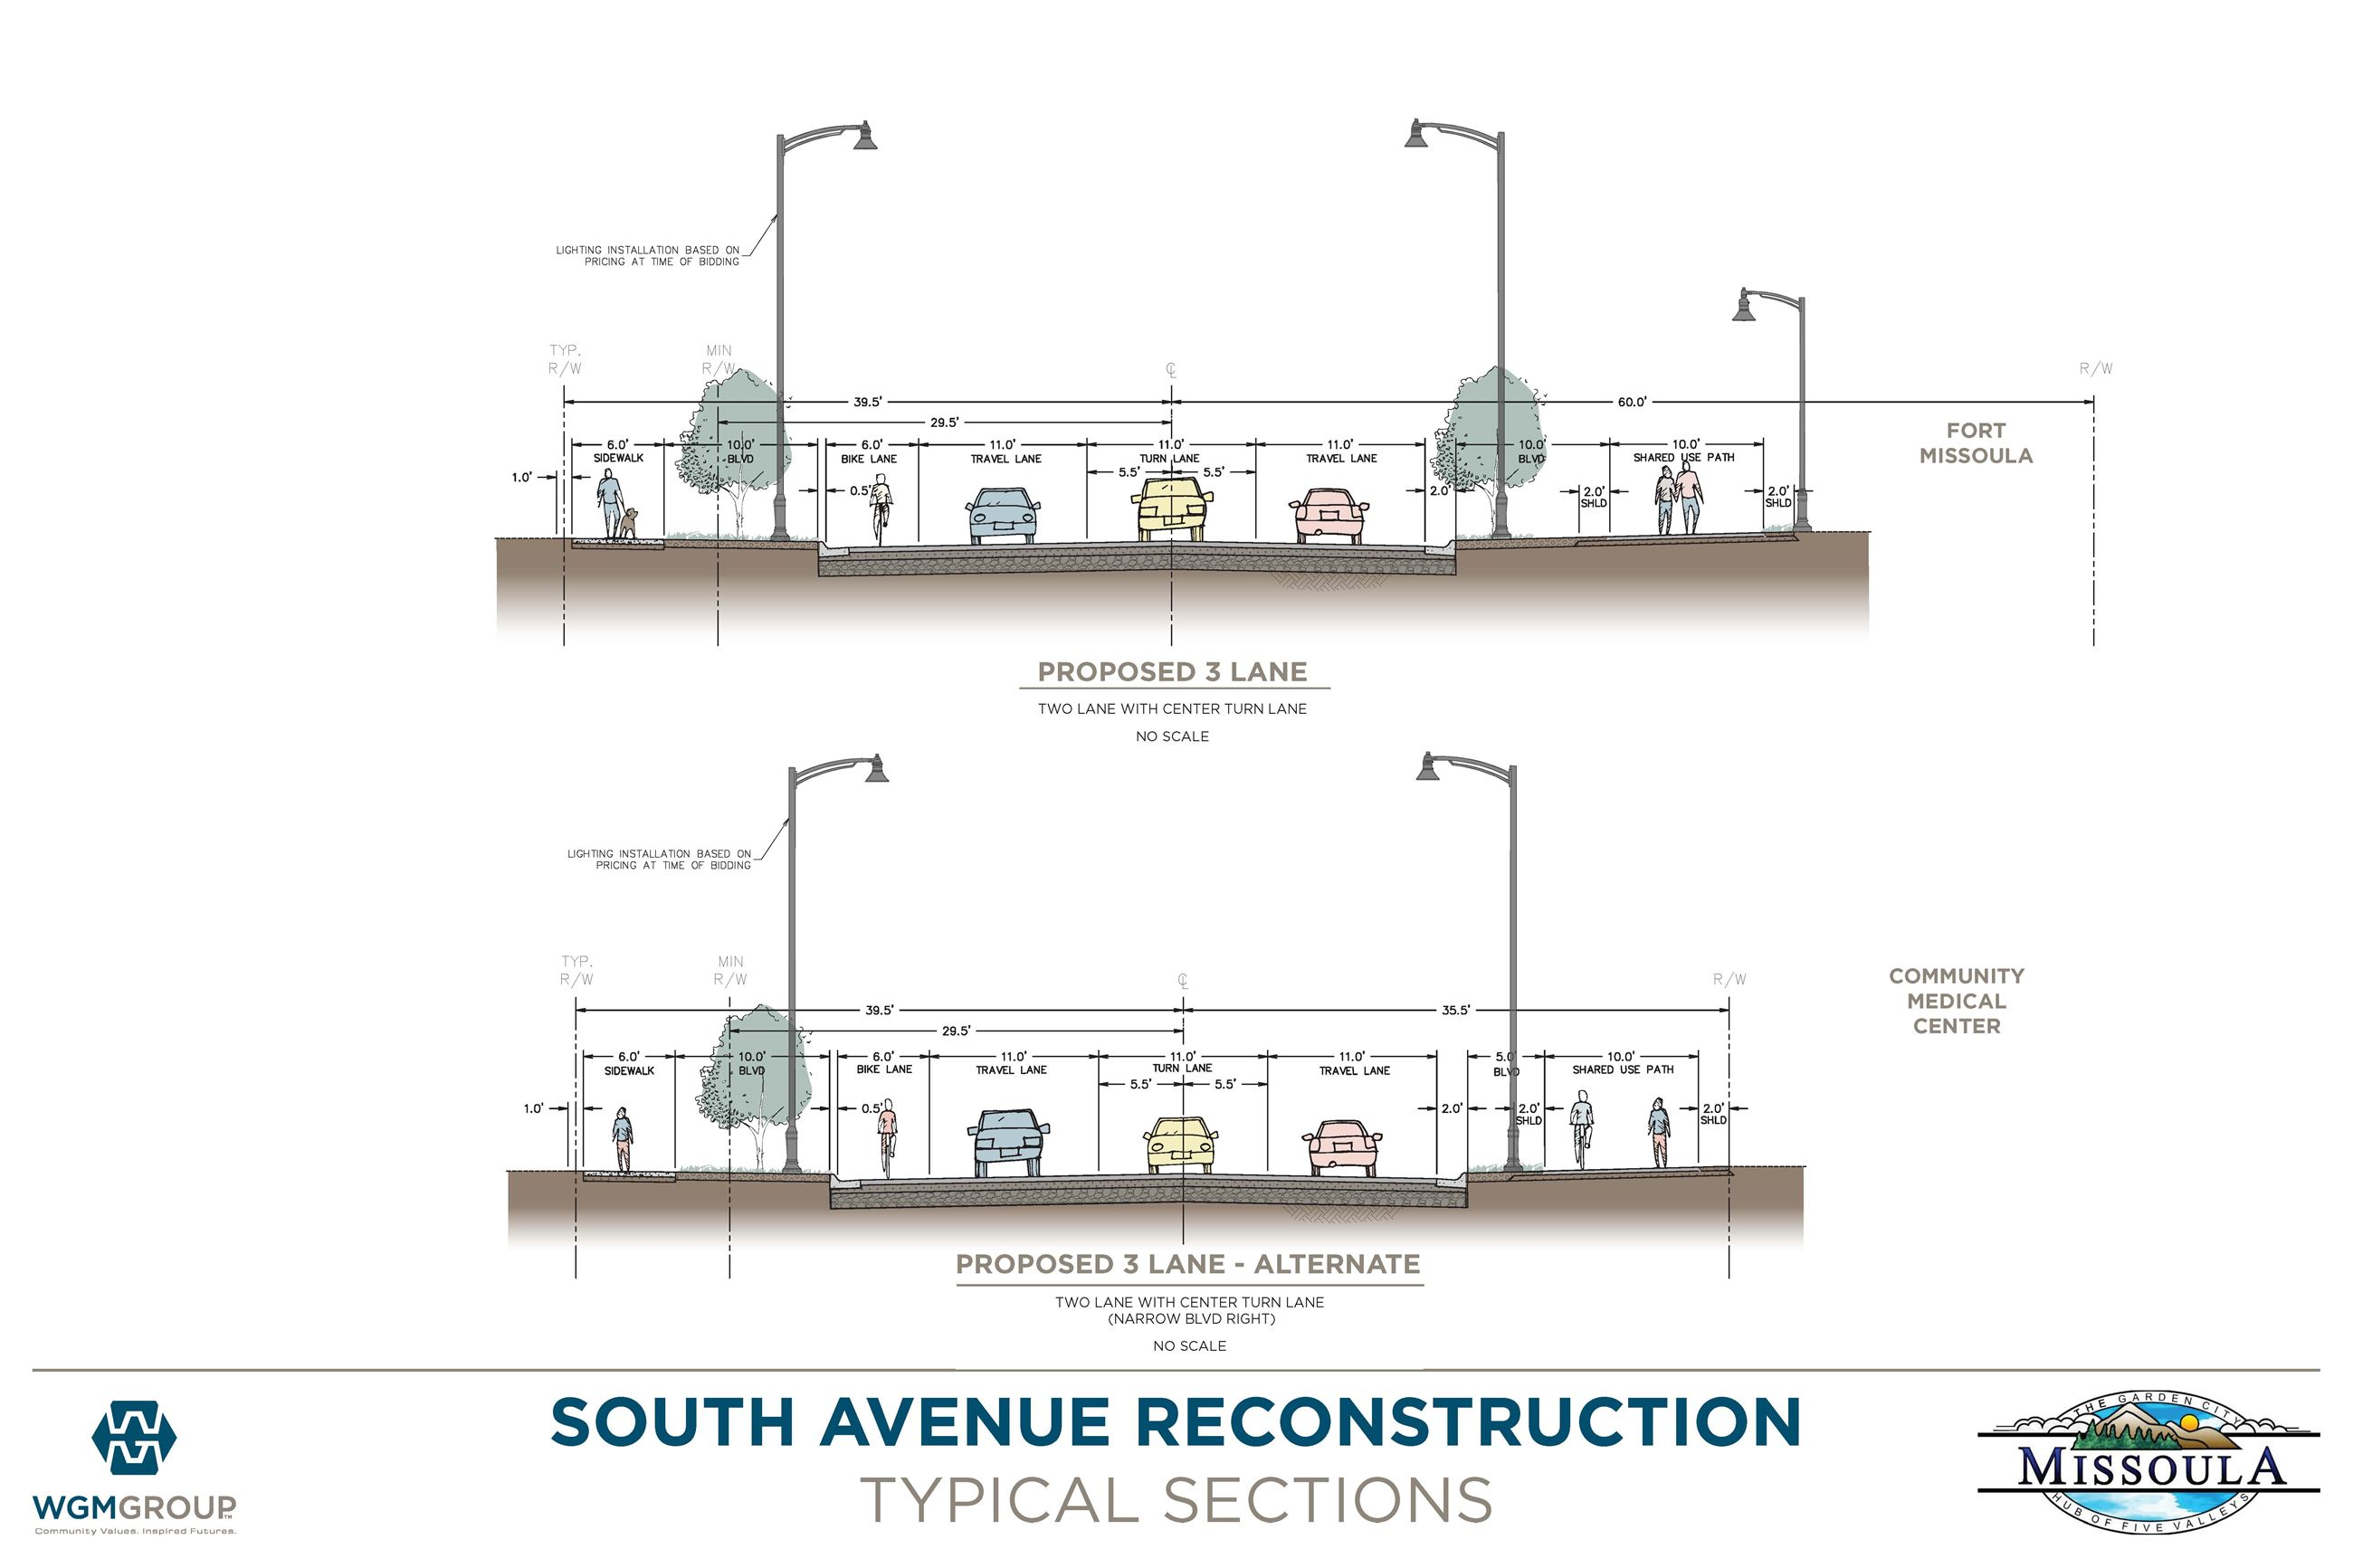 SouthAve_Section of Proposed 3 Lane Road